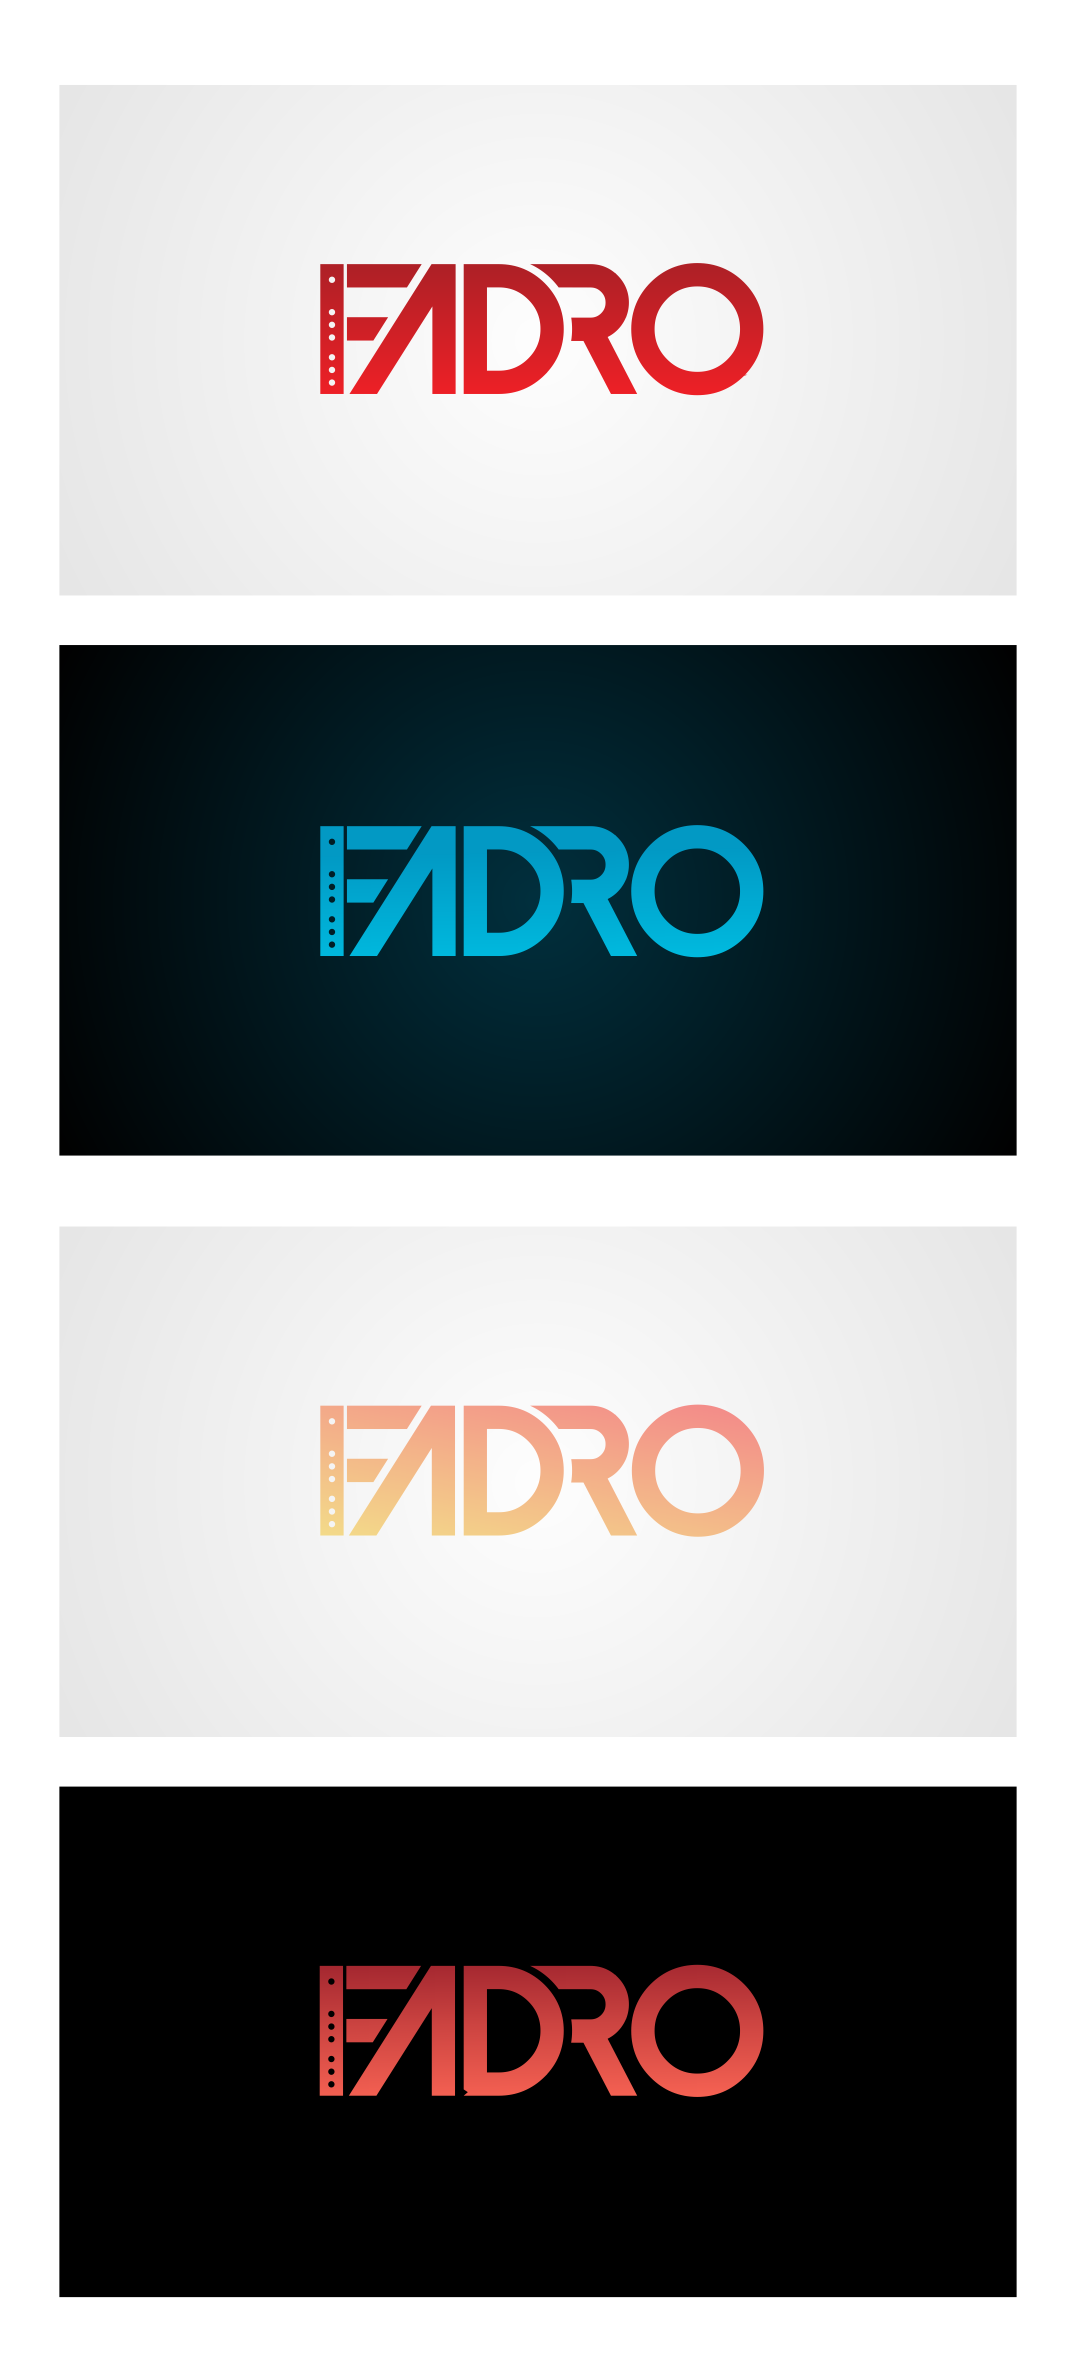 Artist Logo - Incorporate a flute into or around logo lettering of Fadro